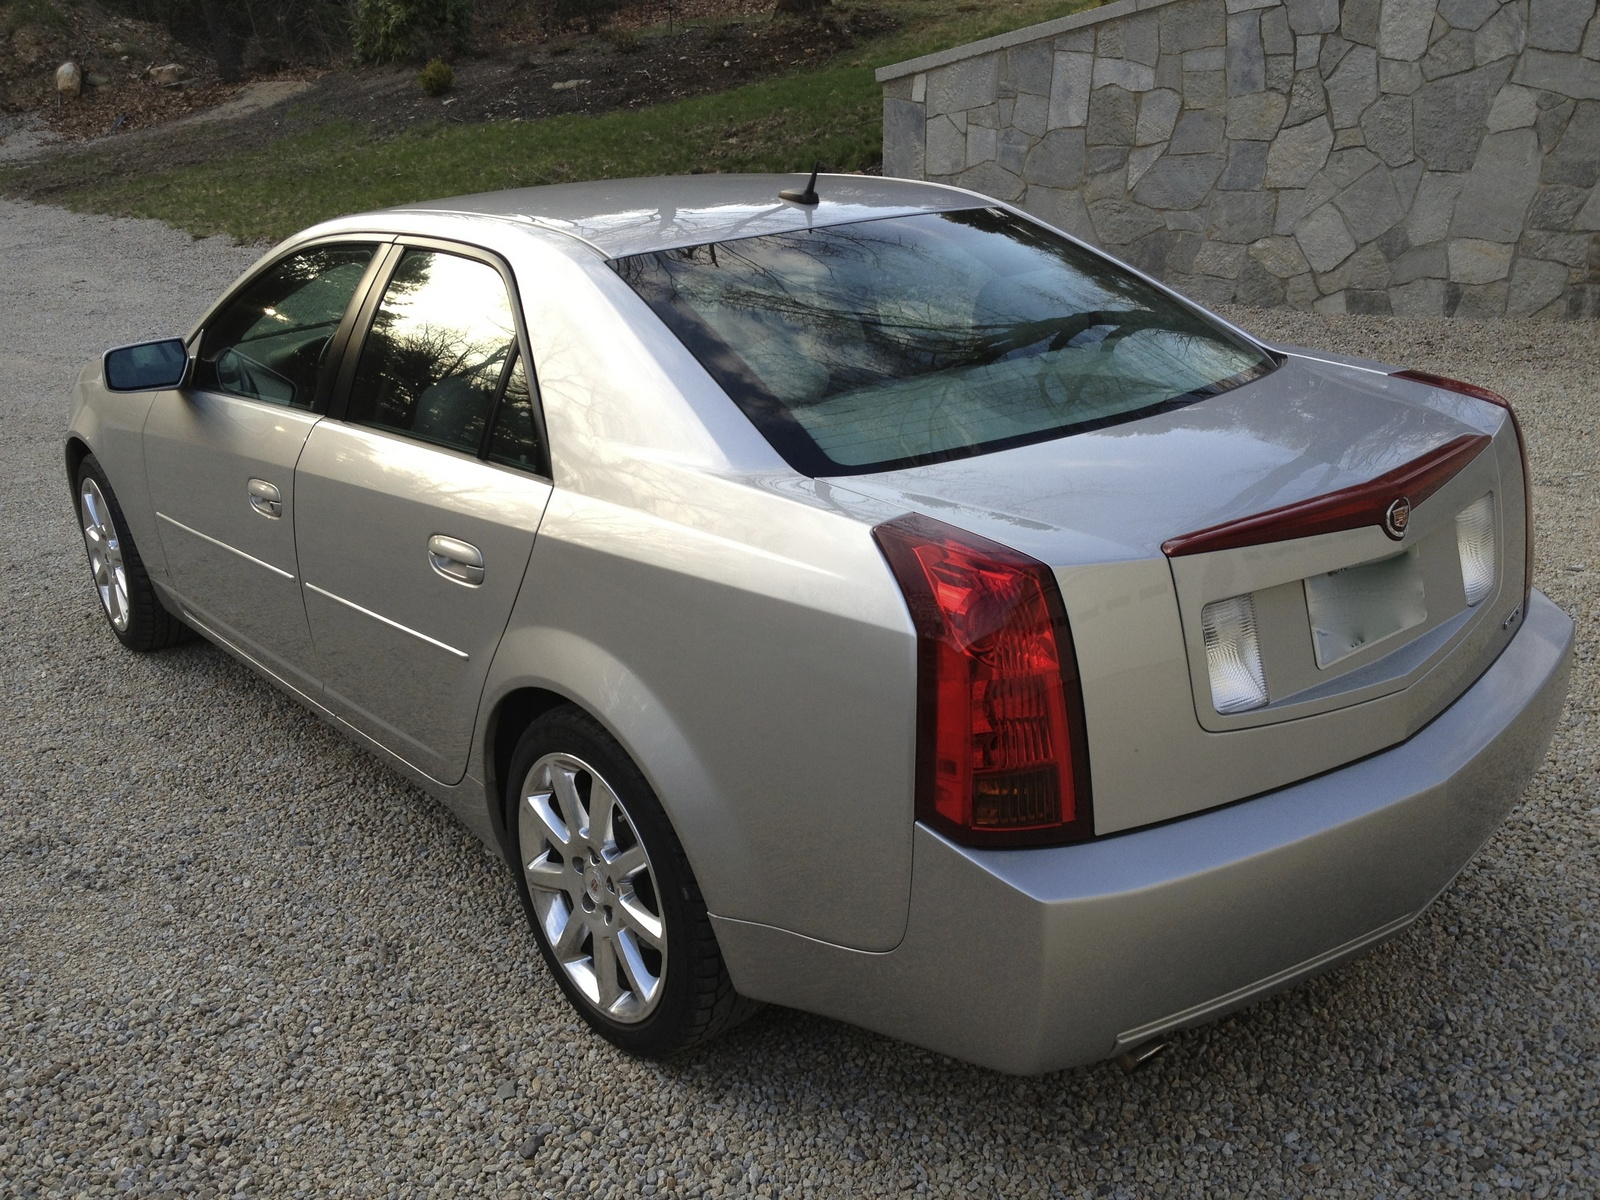 2006 cadillac cts exterior pictures cargurus. Black Bedroom Furniture Sets. Home Design Ideas